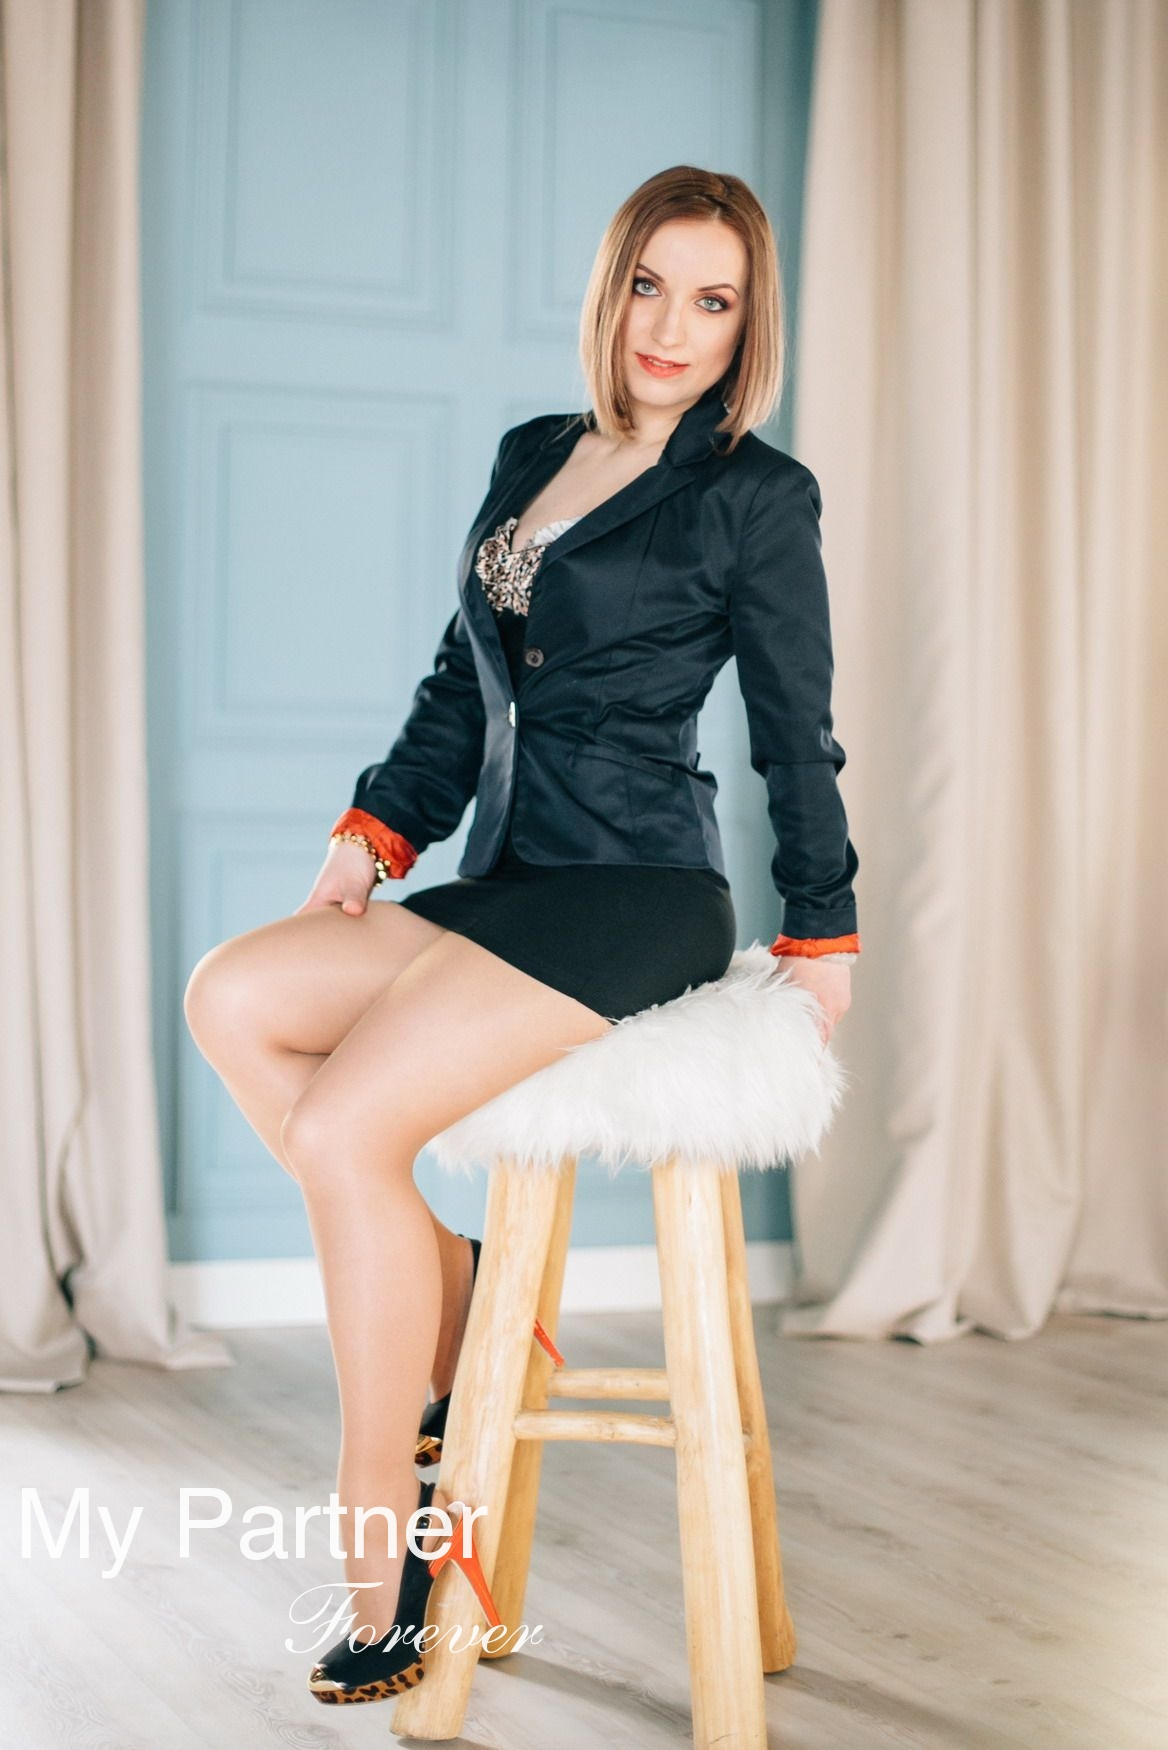 Meet Charming Belarusian Girl Alina from Grodno, Belarus